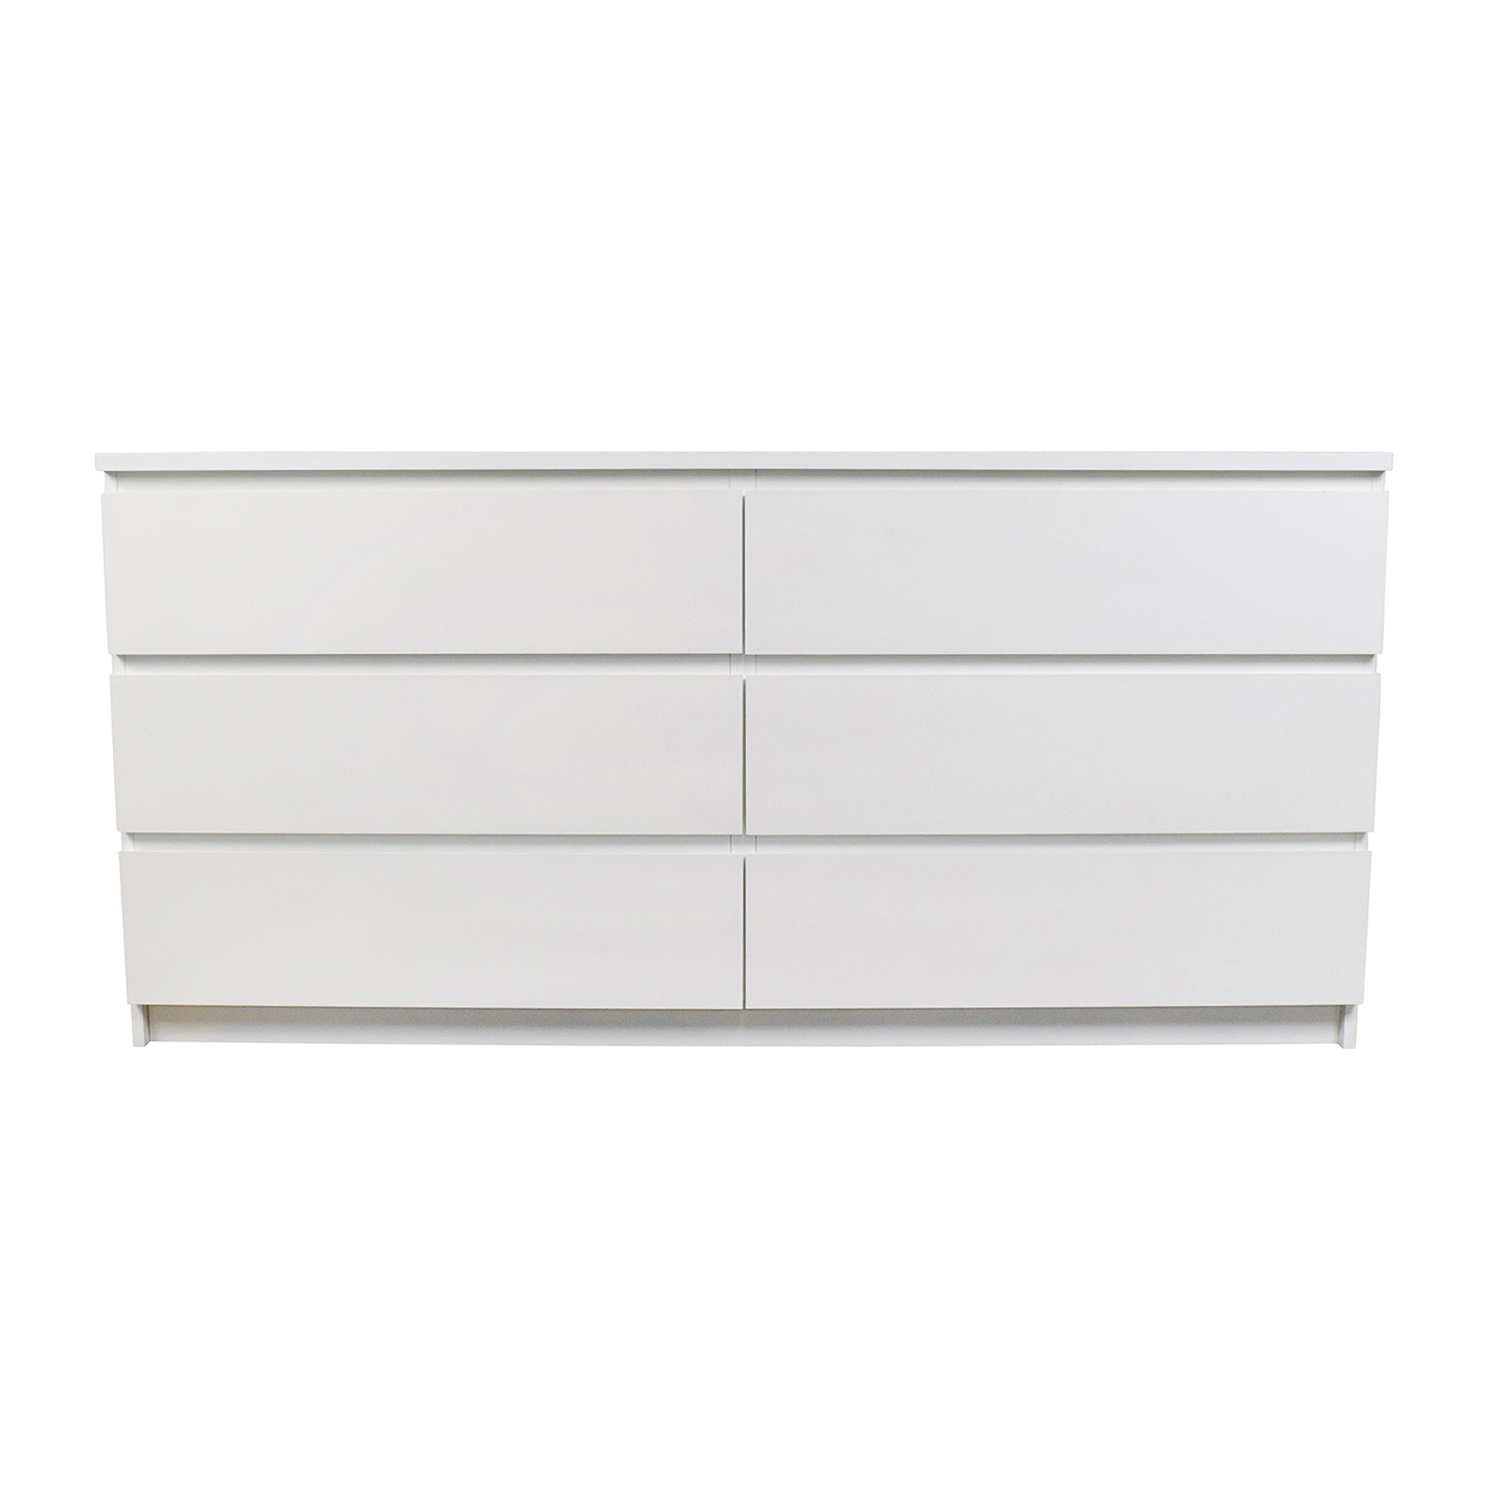 tables cm drawers malm of art dresser en products table gb ikea dressing white chest